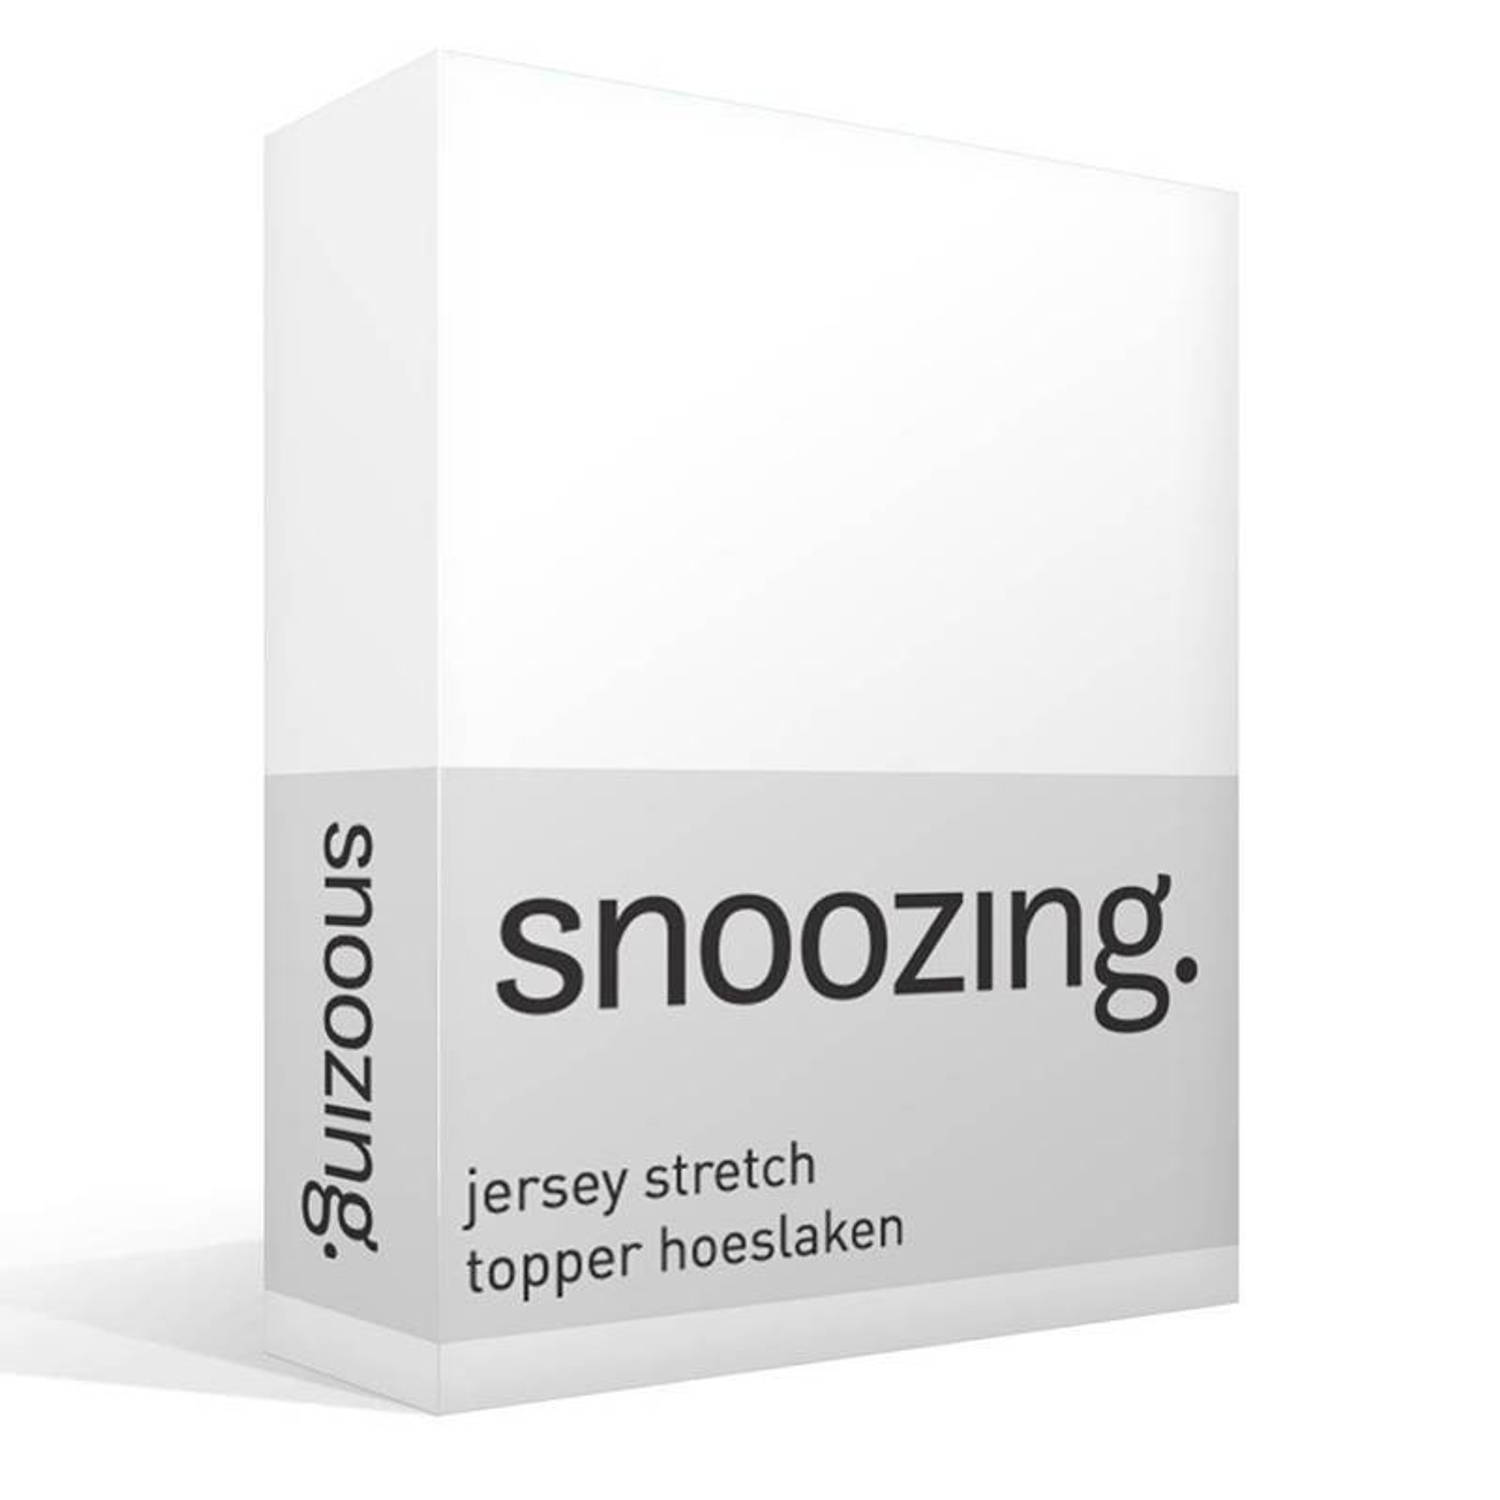 Snoozing jersey stretch topper hoeslaken - 1-persoons (70/80x200/220 cm)